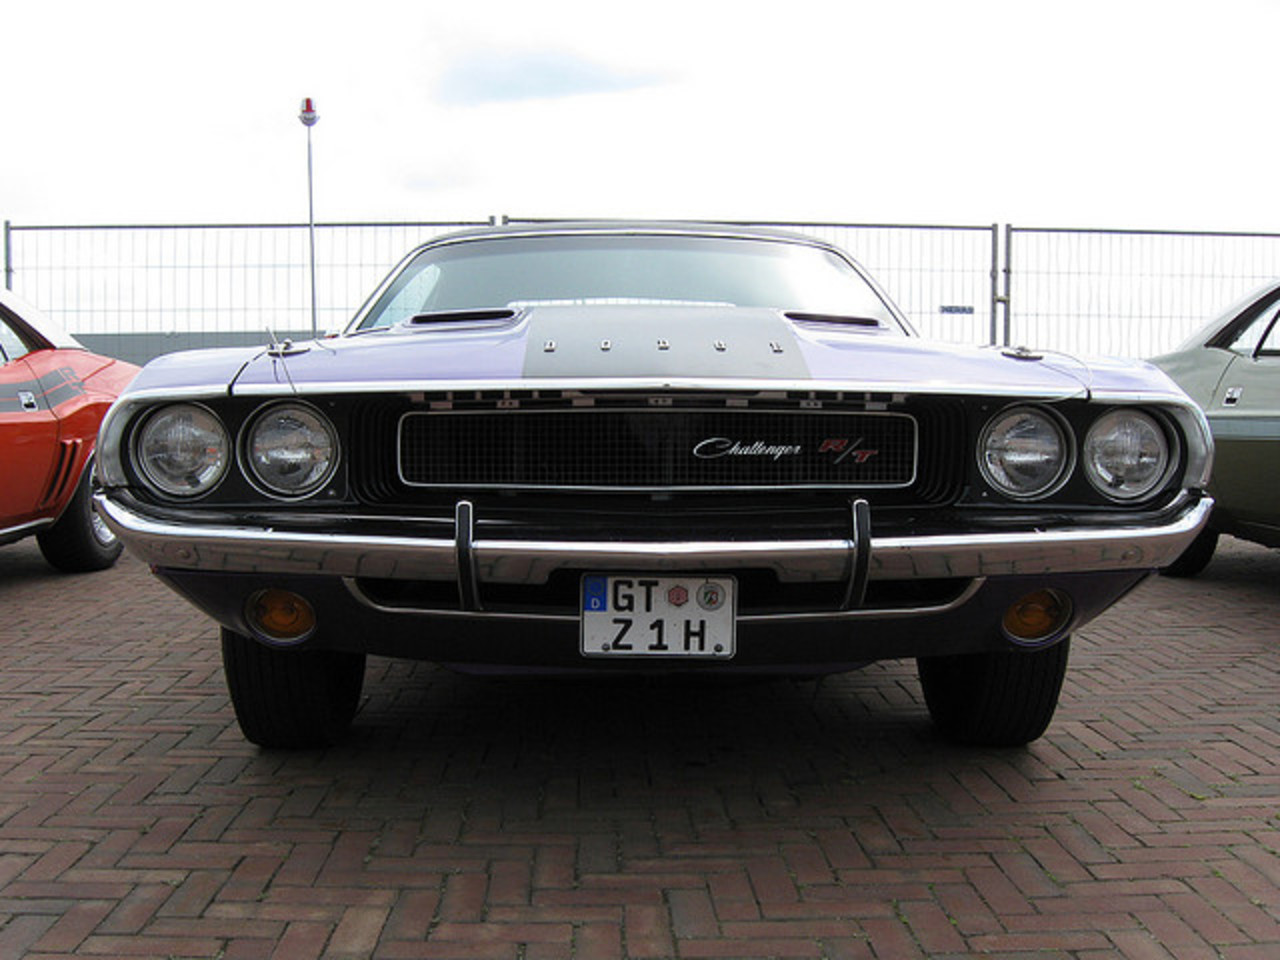 Dodge Challenger RT SE 440 Sixpack 1970 | Flickr - Photo Sharing!